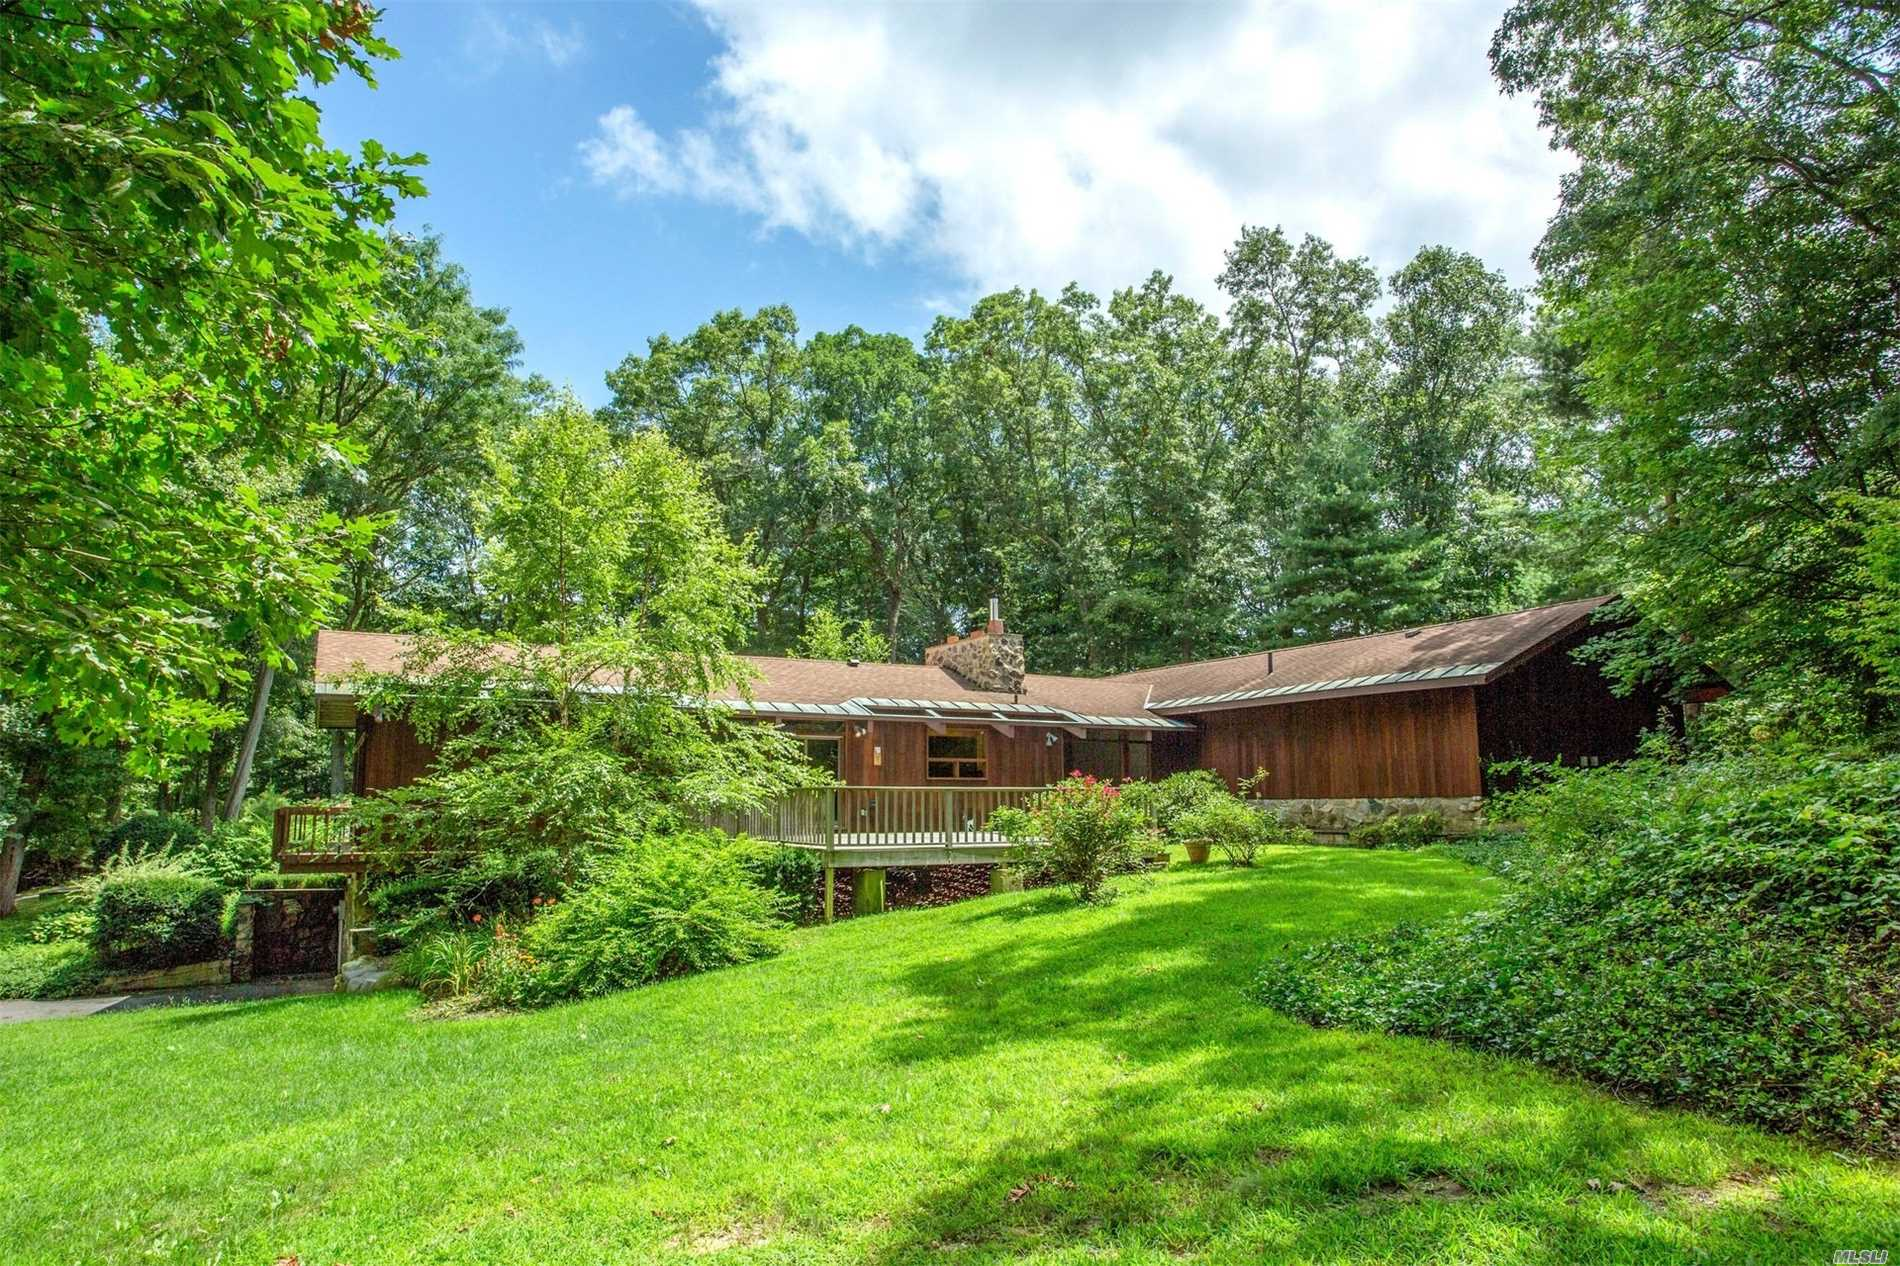 Aspen Style Resort Living On Long Island! Fall In Love With This Pastoral Setting Nestled On 2+ Country Acres With A 2 Stall Barn And Paddock, Adjacent To Miles Of Riding Trails. Offering An Open Floor Plan, Cathedral Ceilings And Spacious Rooms. This Horse Lover's Paradise Is The Perfect Retreat And The Perfect Place For Inspiration. Let The Love Affair Begin.